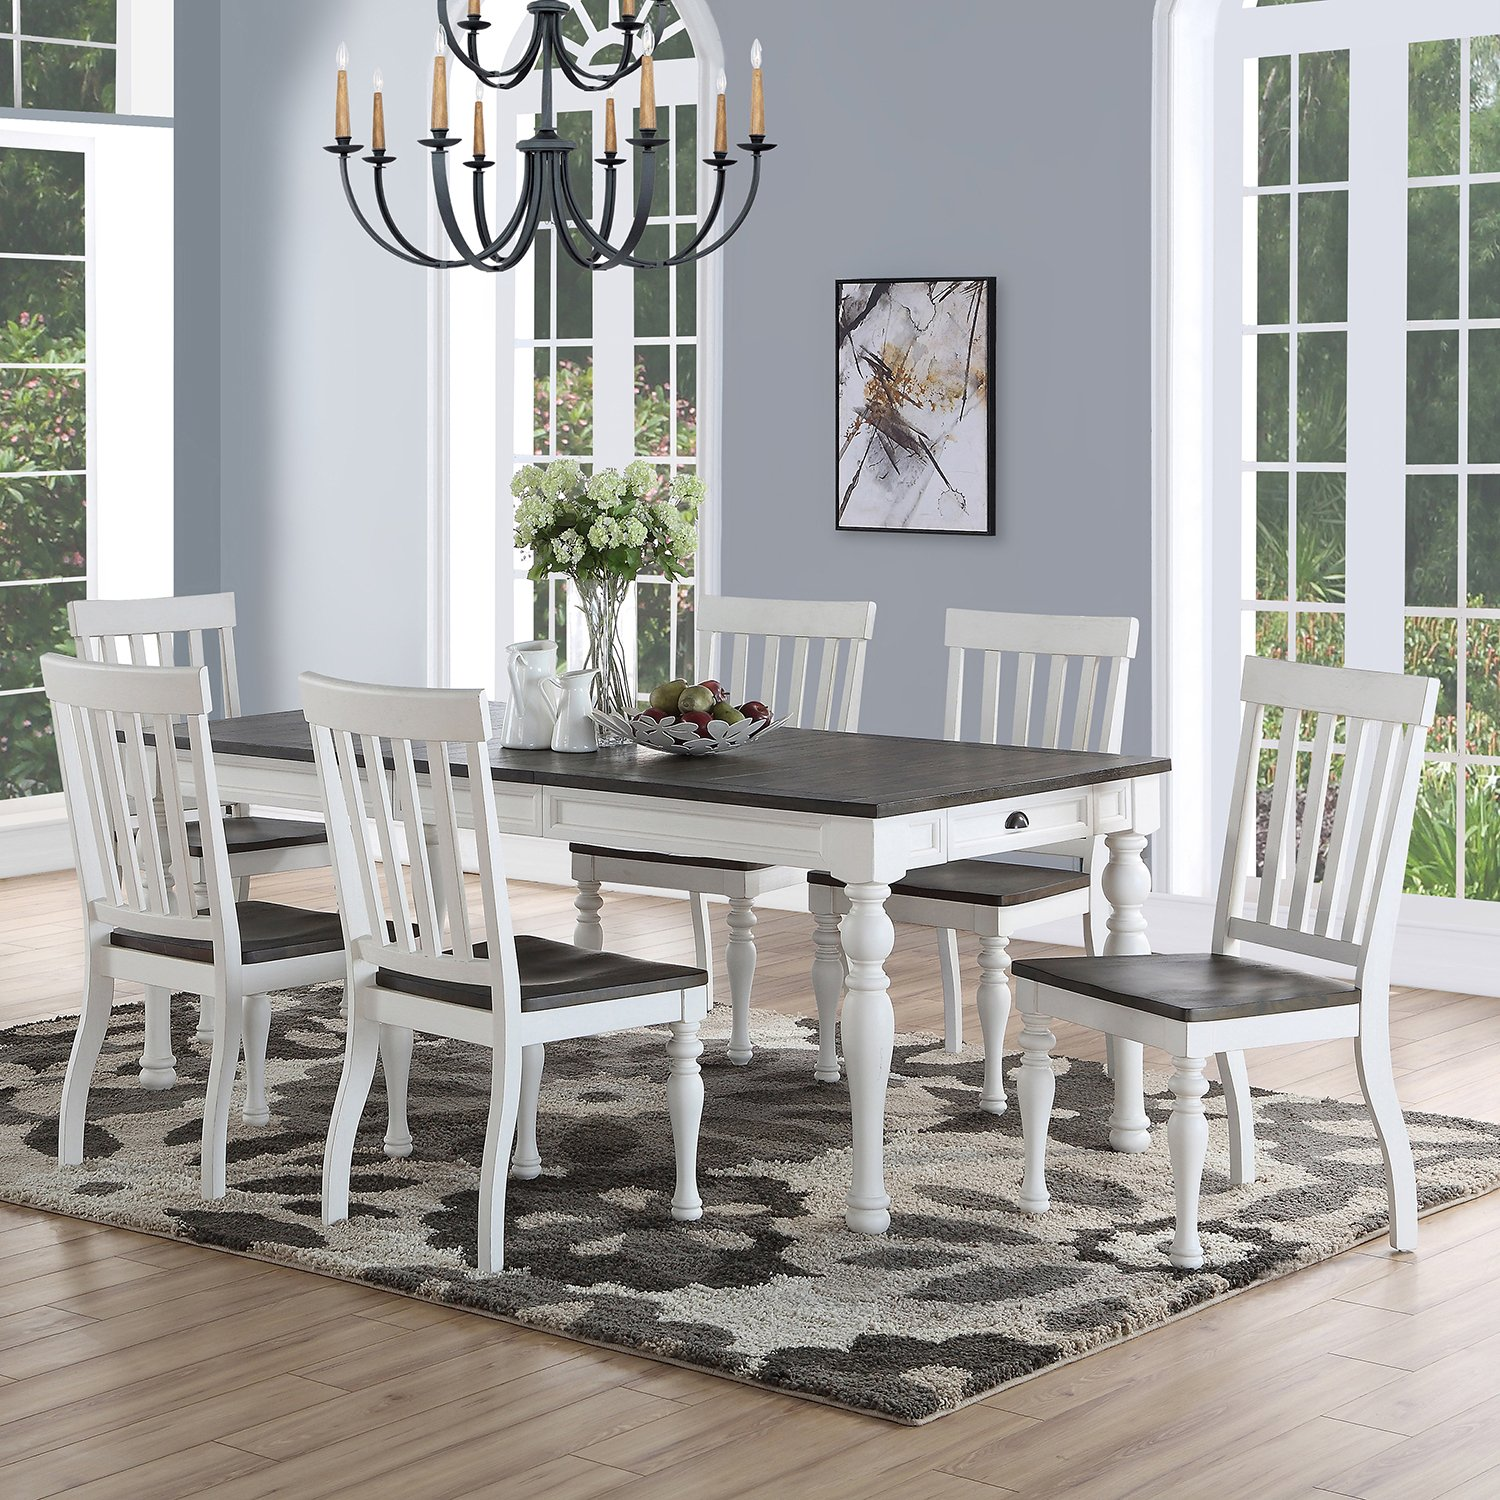 Details about Laurel 7 Piece Rustic Farmhouse Dining Set White Dark Brown  Contrast Shabby Chic